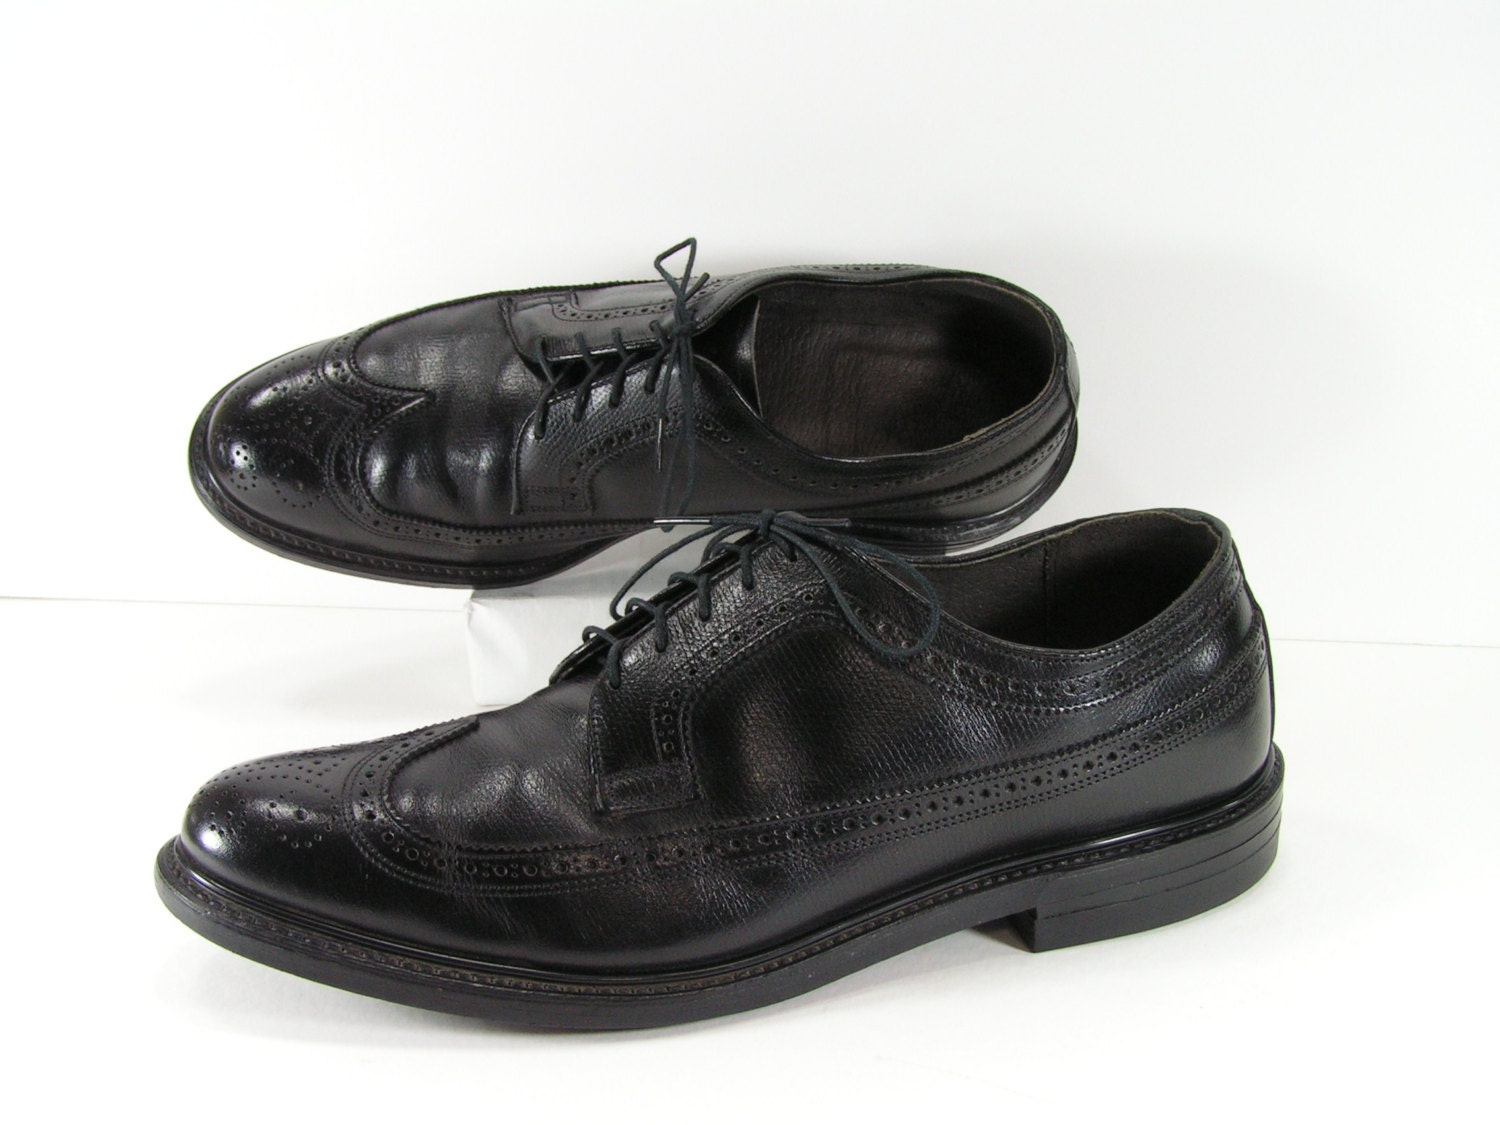 wingtip dress shoes mens 11 d black oxford brogue leather